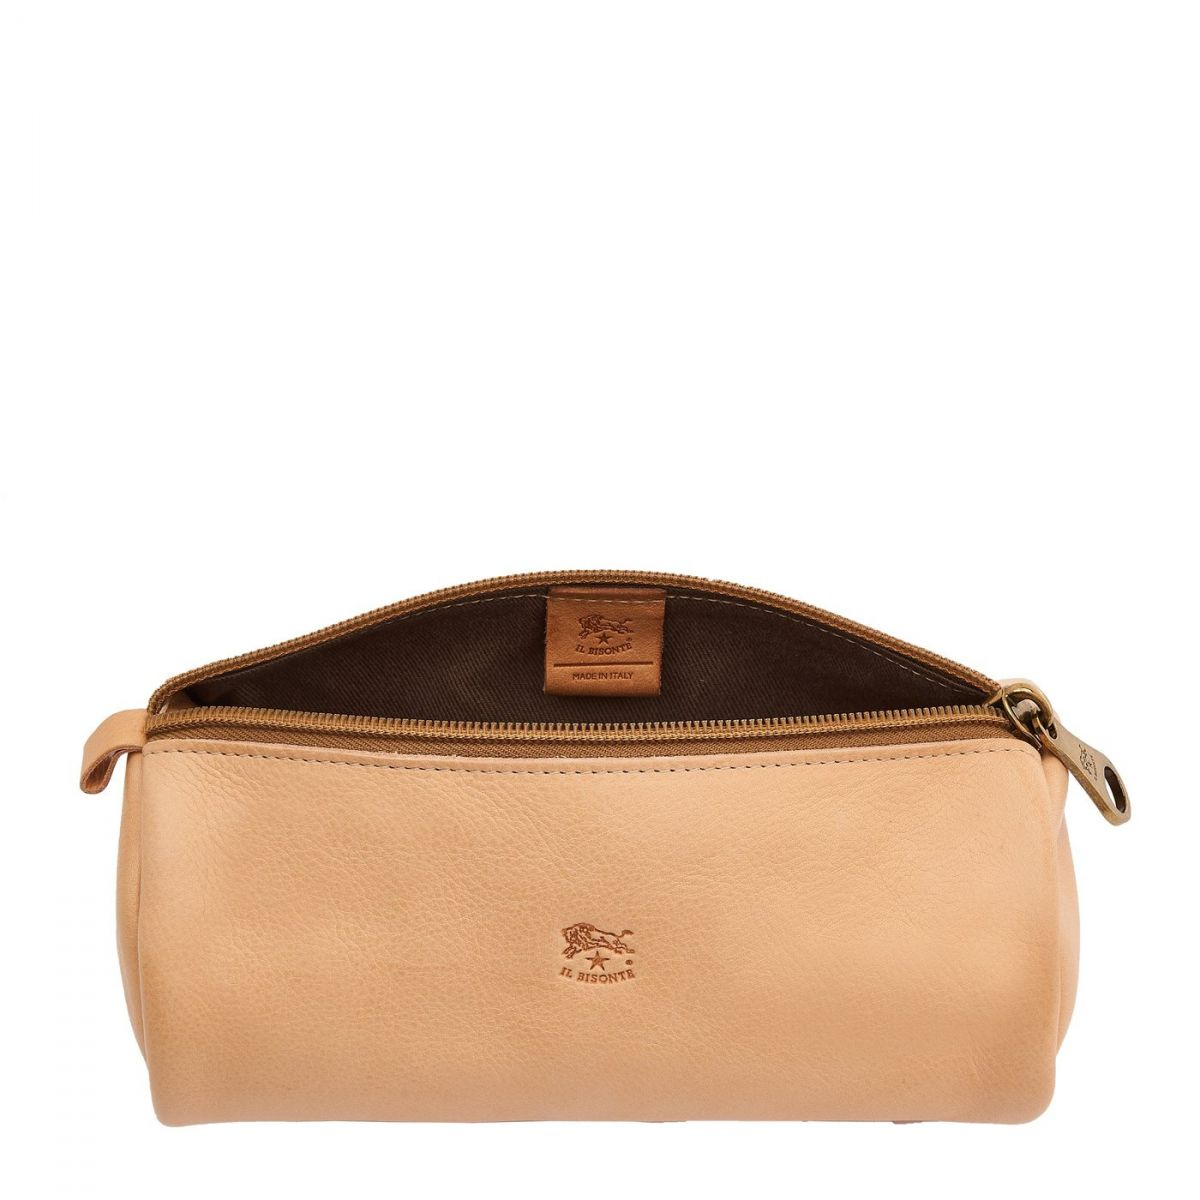 Case  in Cowhide Leather SCA049 color Natural | Details